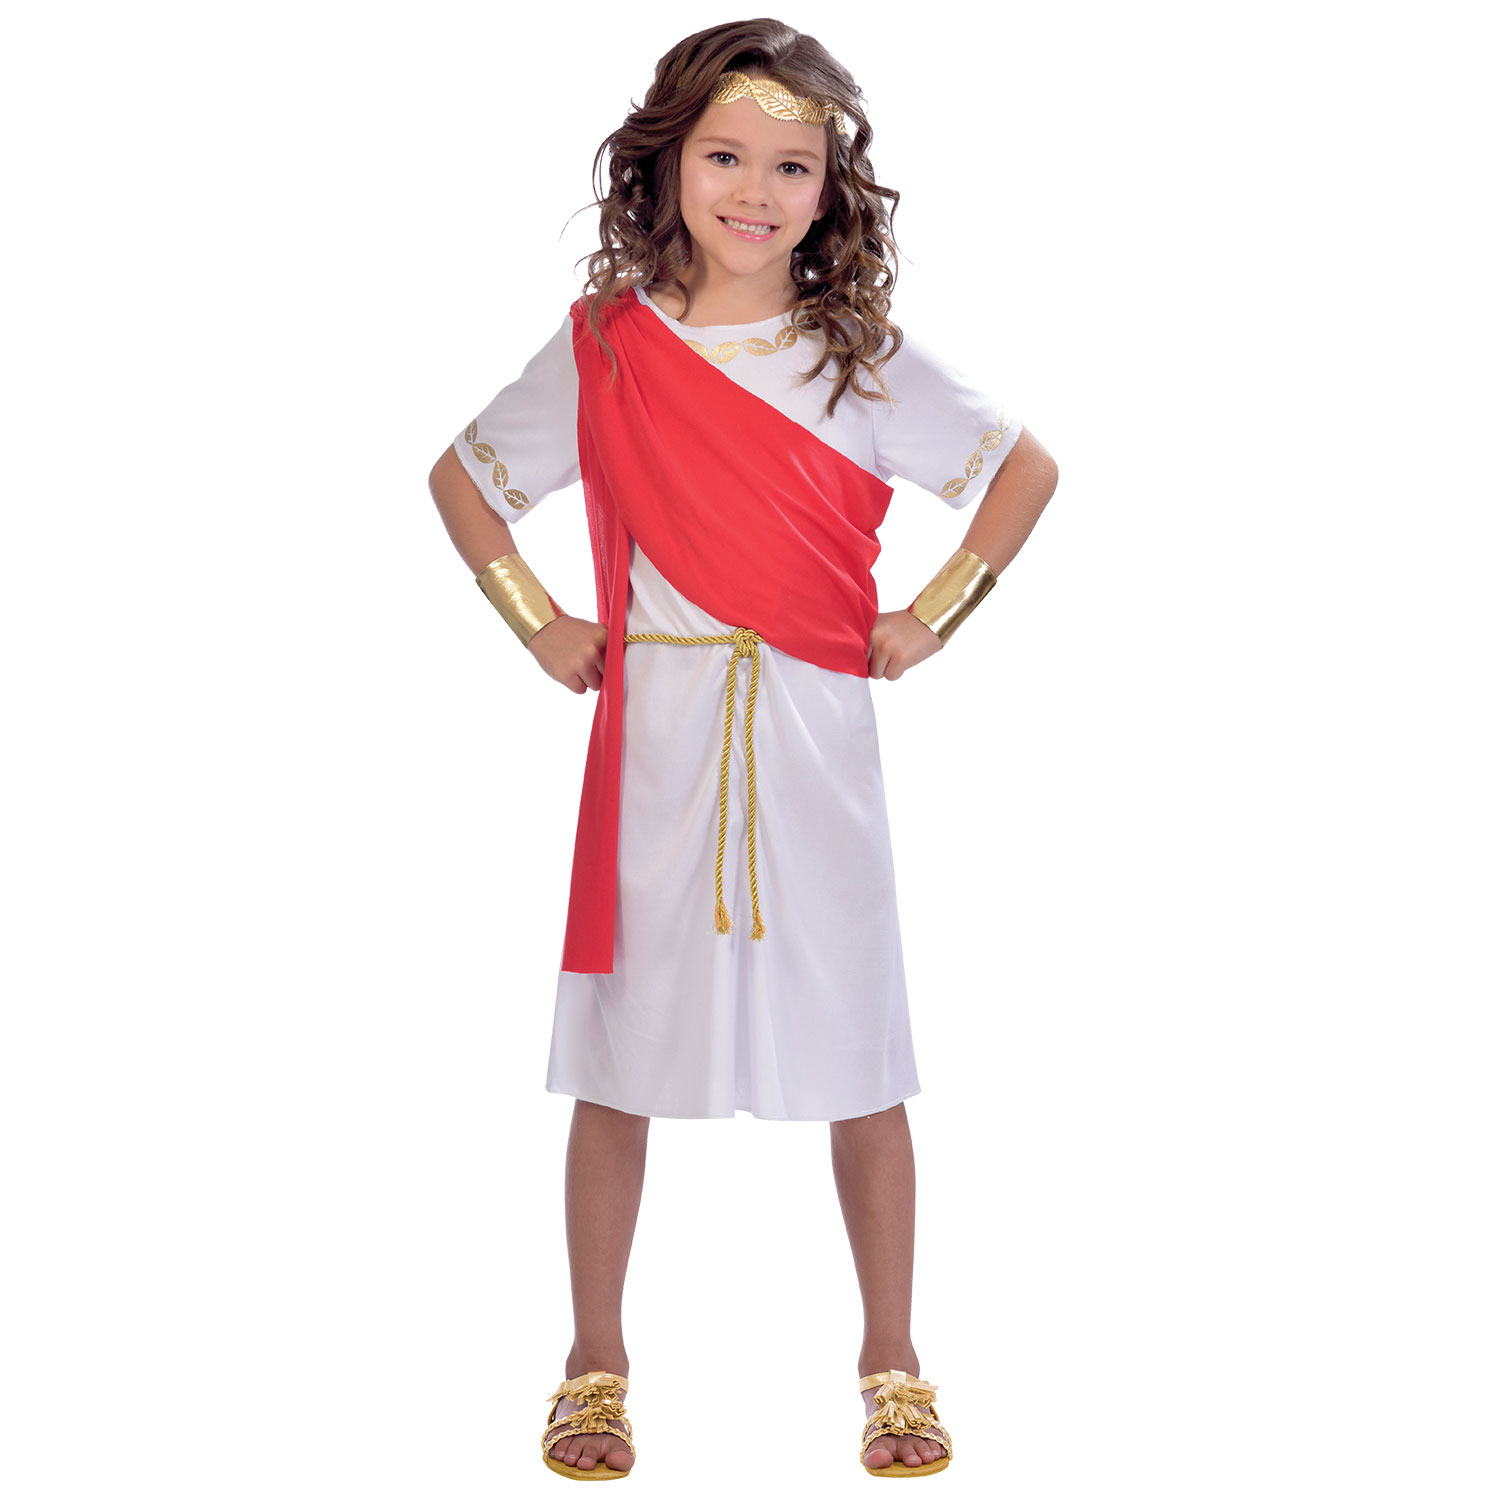 Toga Girl Costume , Age 10,12 Years , 1 PC  Amscan